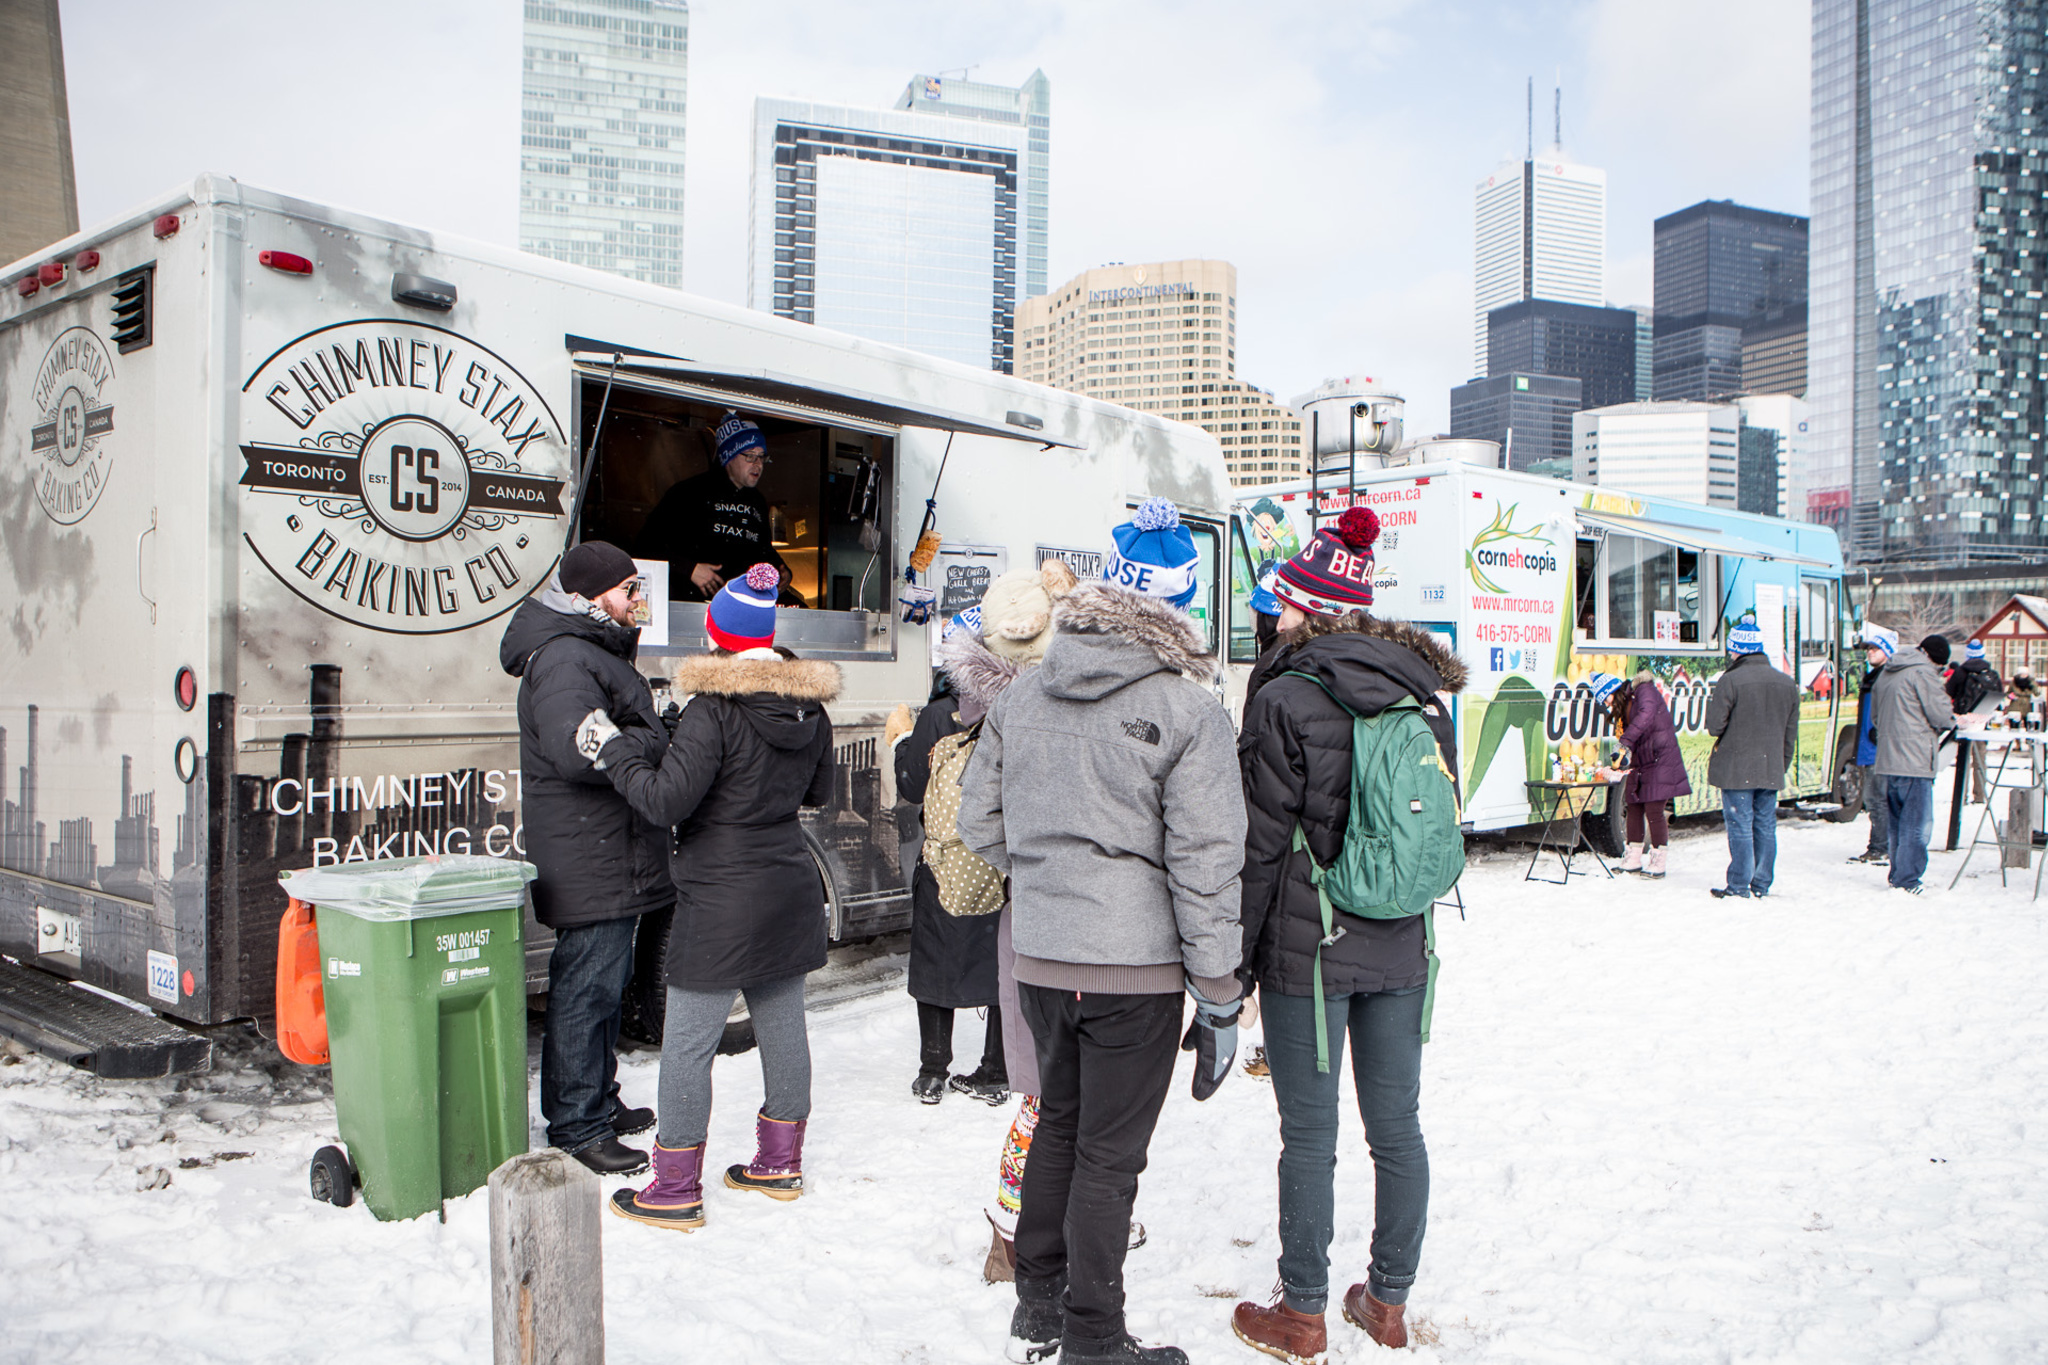 Toronto, CAN: Food trucks at Roundhouse Winter Craft Beer Festival